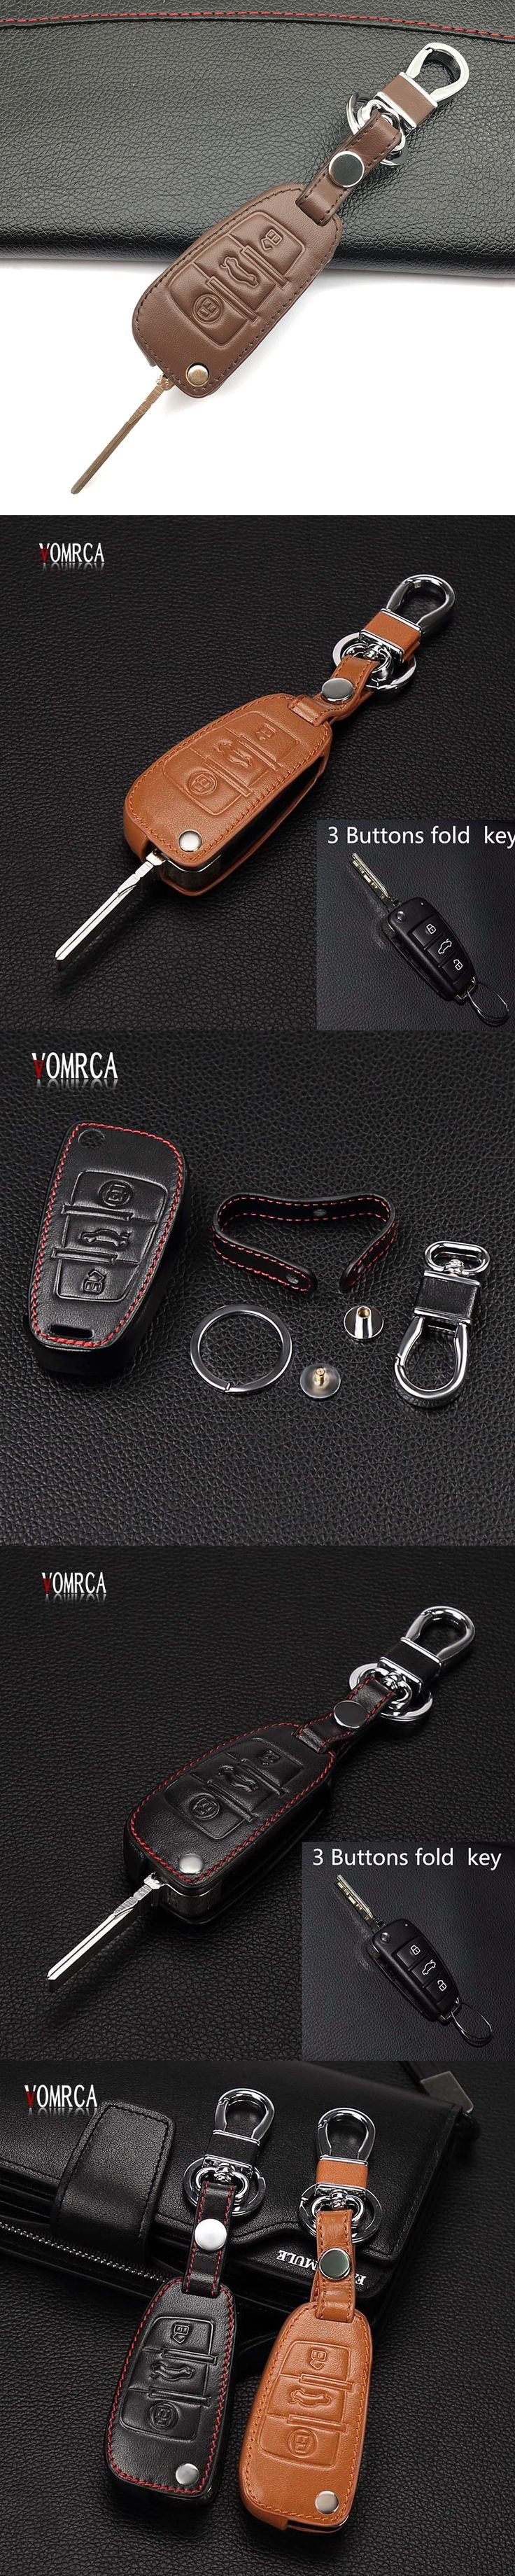 Car Key Cover Case Leather for Audi Sline A3 A5 Q3 Q5 A6 C5 C6 A4 B6 B7 B8 TT 80 S6 Auto Key Cover Holder Protector Accessories